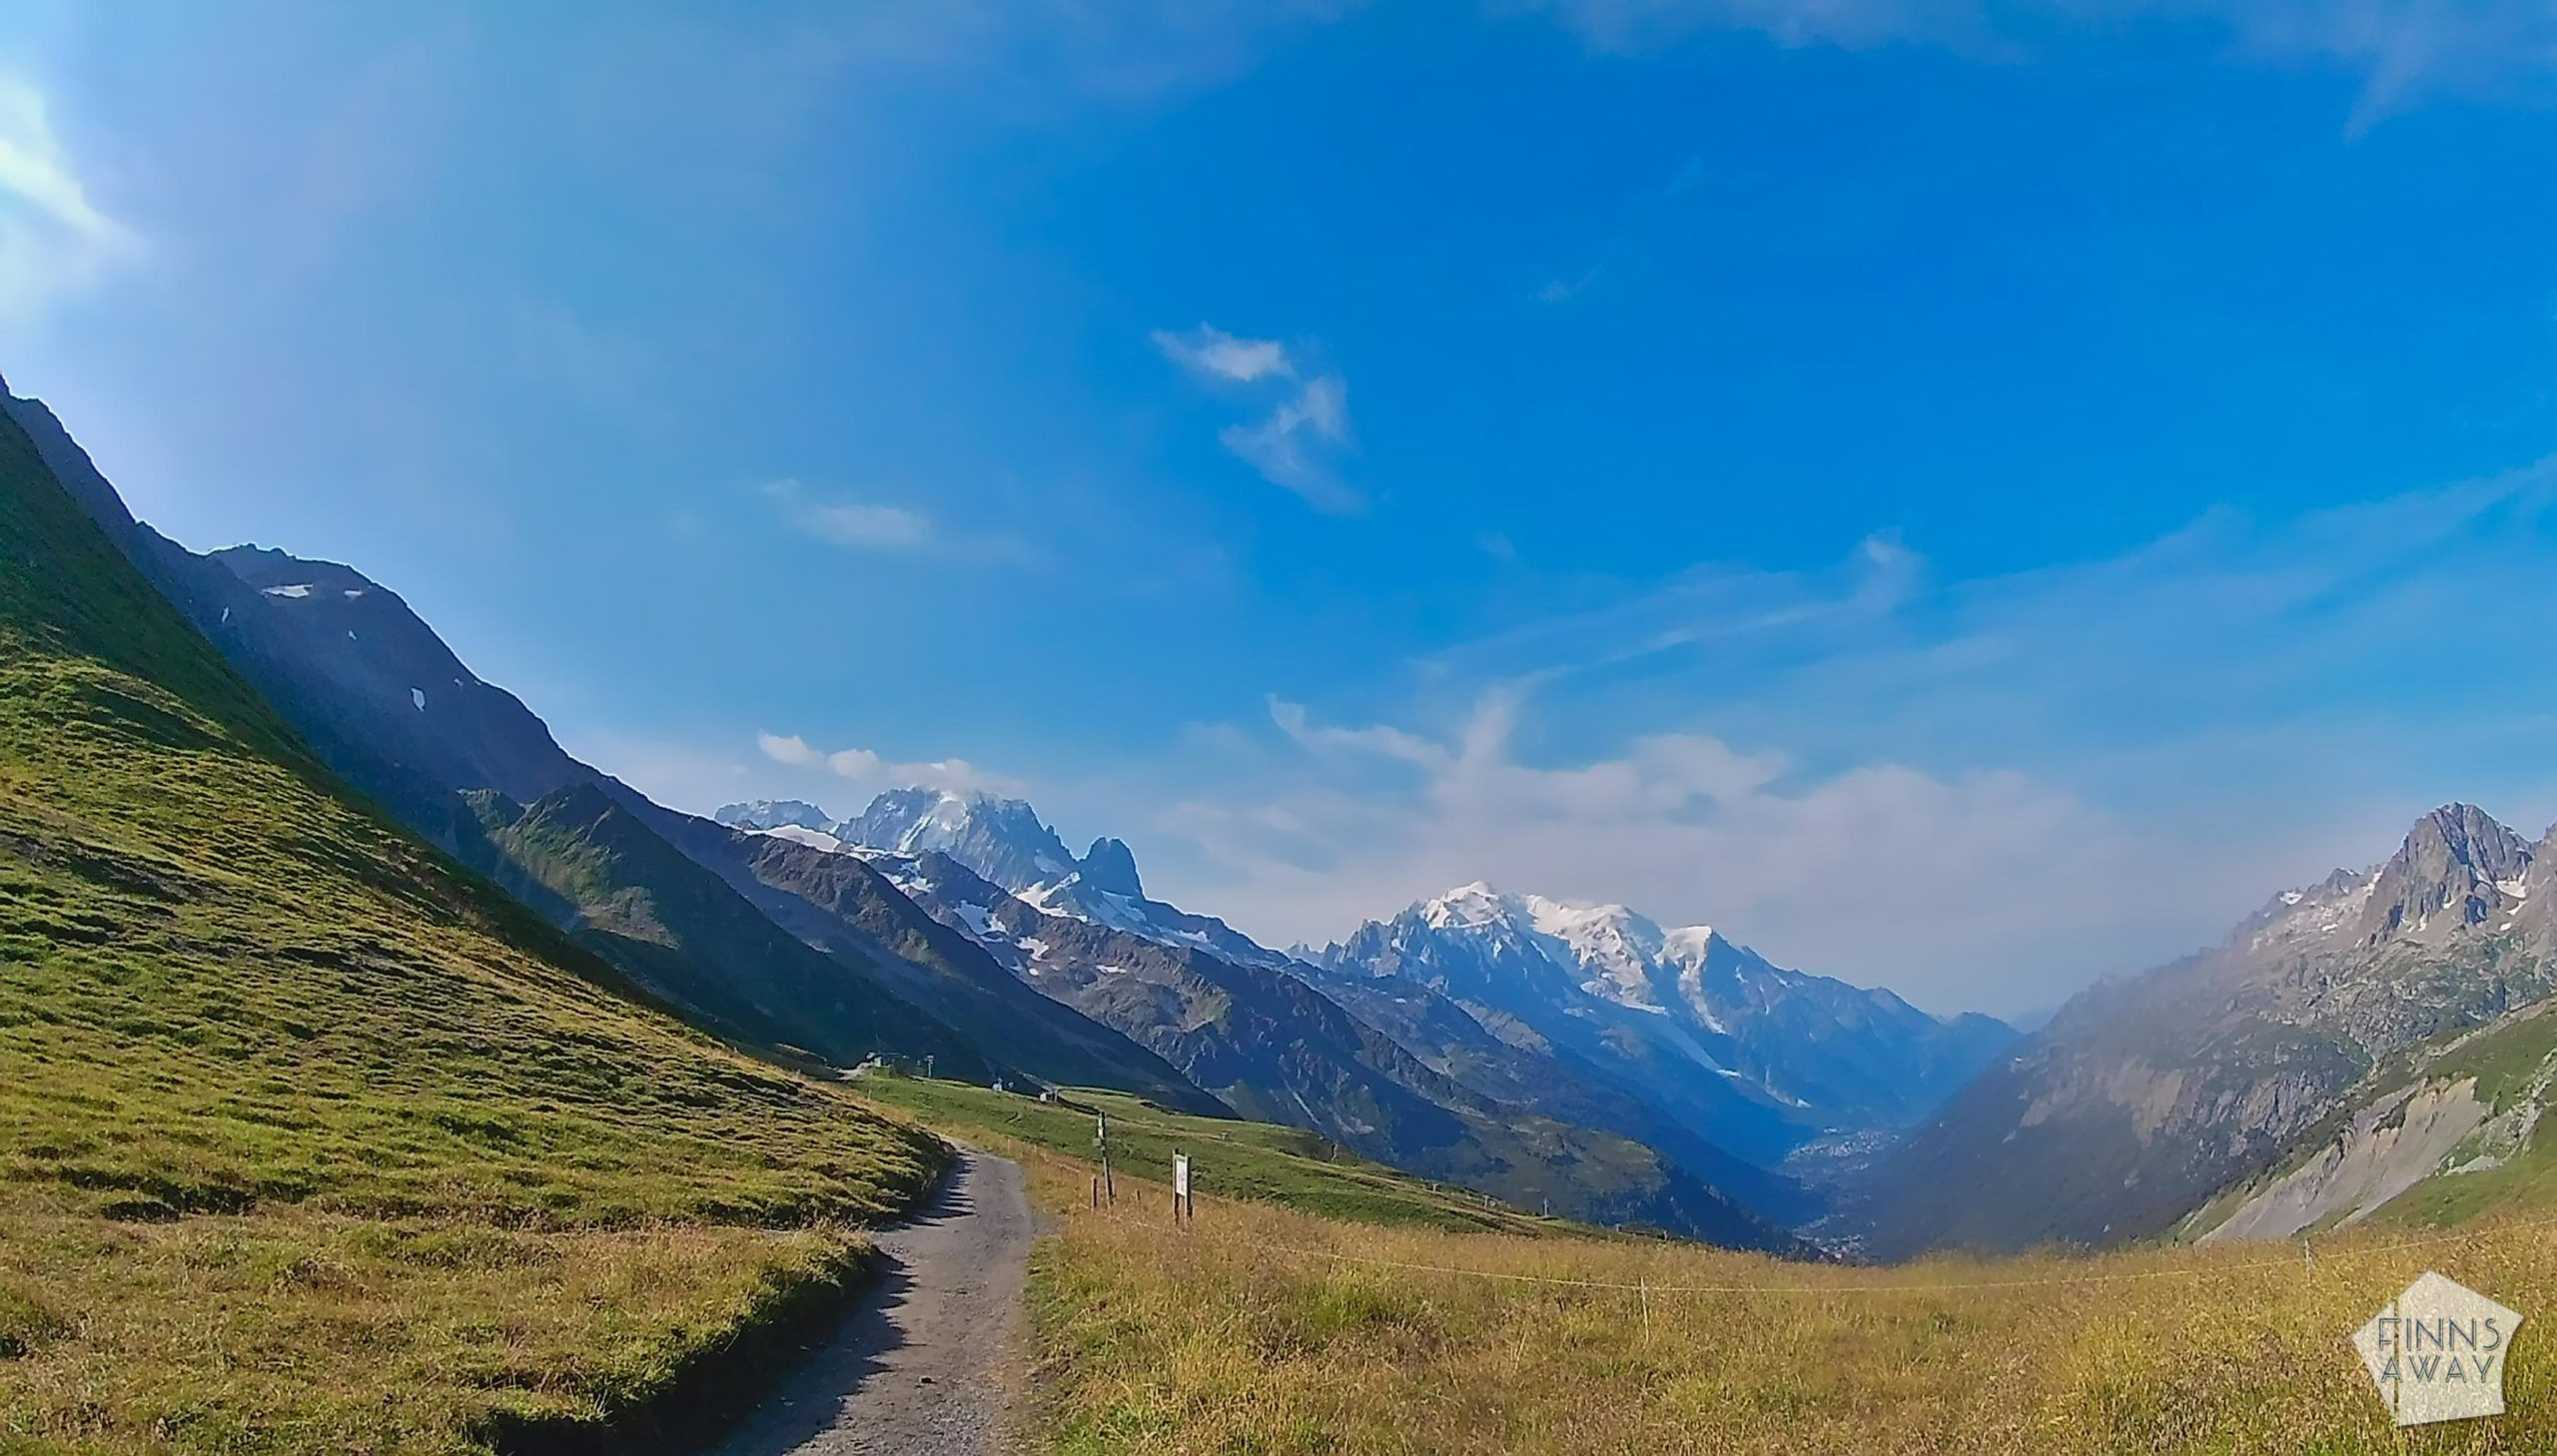 Hiking and camping Tour du Mont Blanc mountain trail in the Alps | FinnsAway travel blog